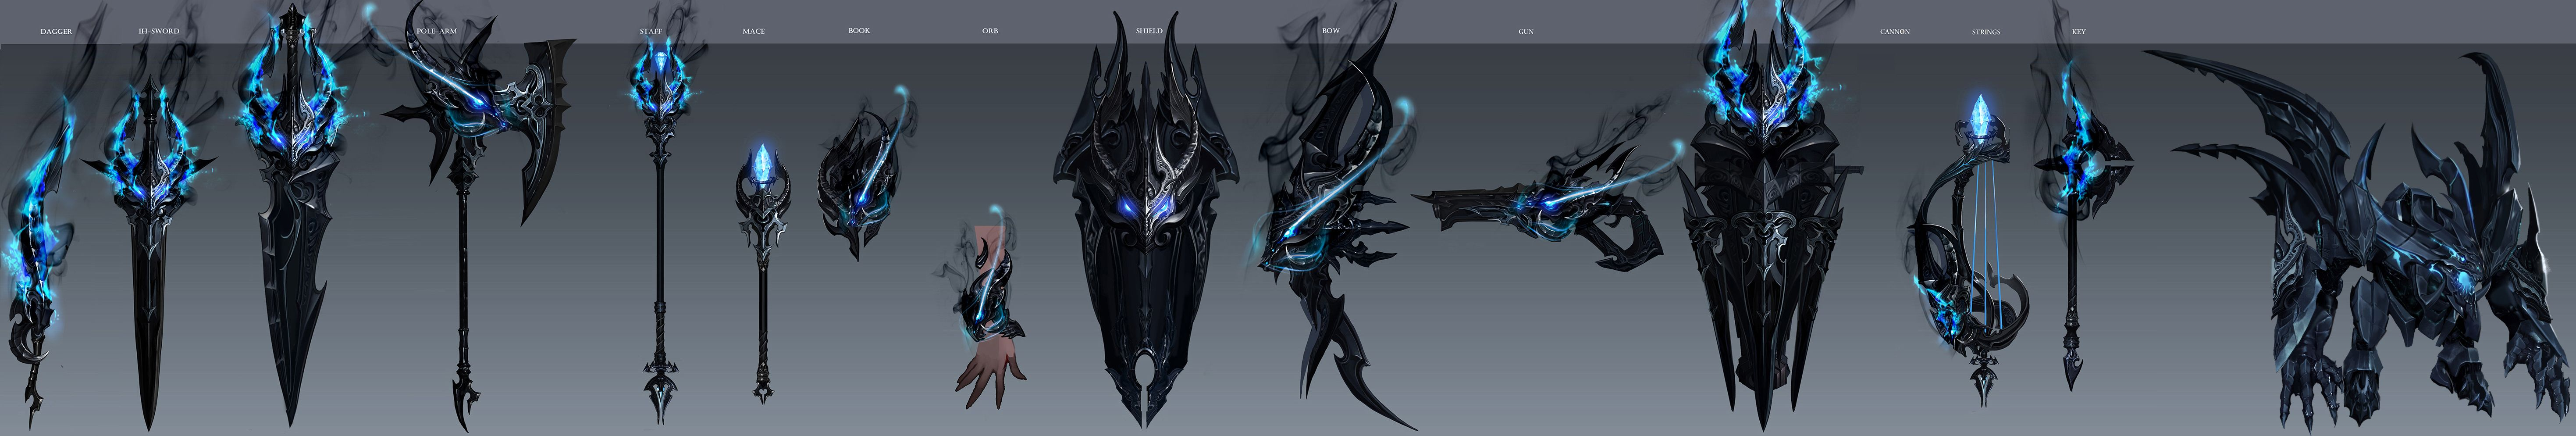 Image result for beritra aion weapon